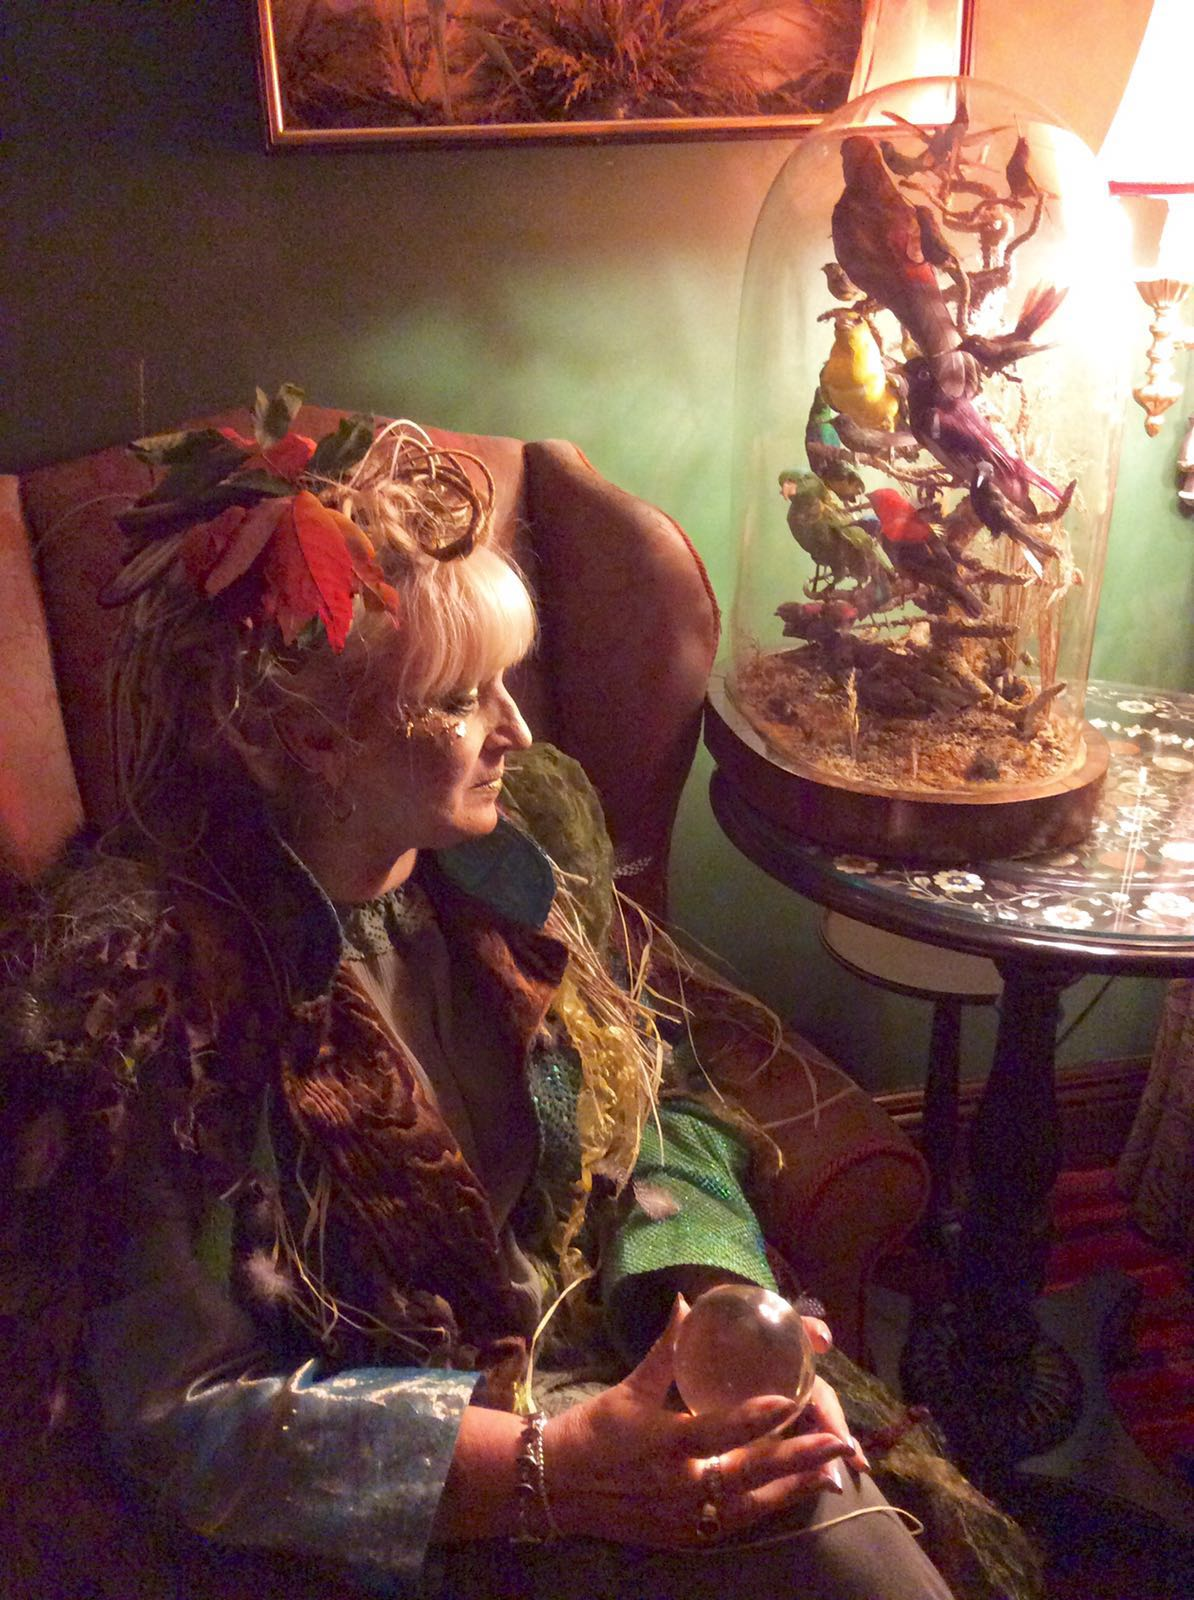 Fortune_teller_tarot_reader_for_parties_events_circus_magic